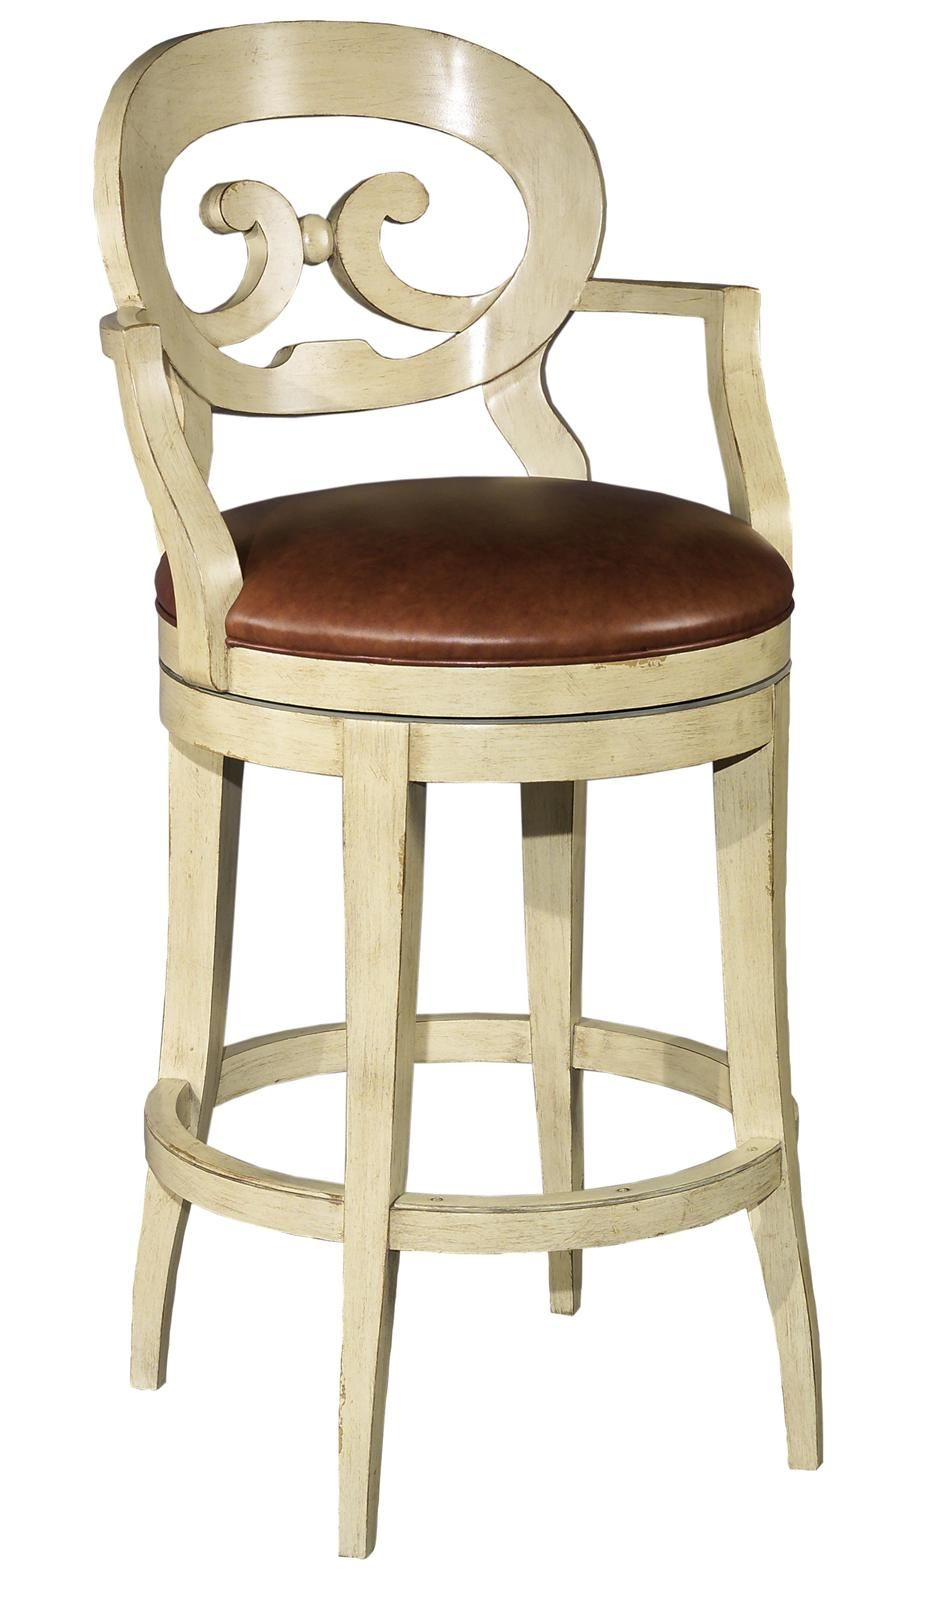 Wooden Swivel Bar Stool Barhocker Barstuhle Weisse Barhocker